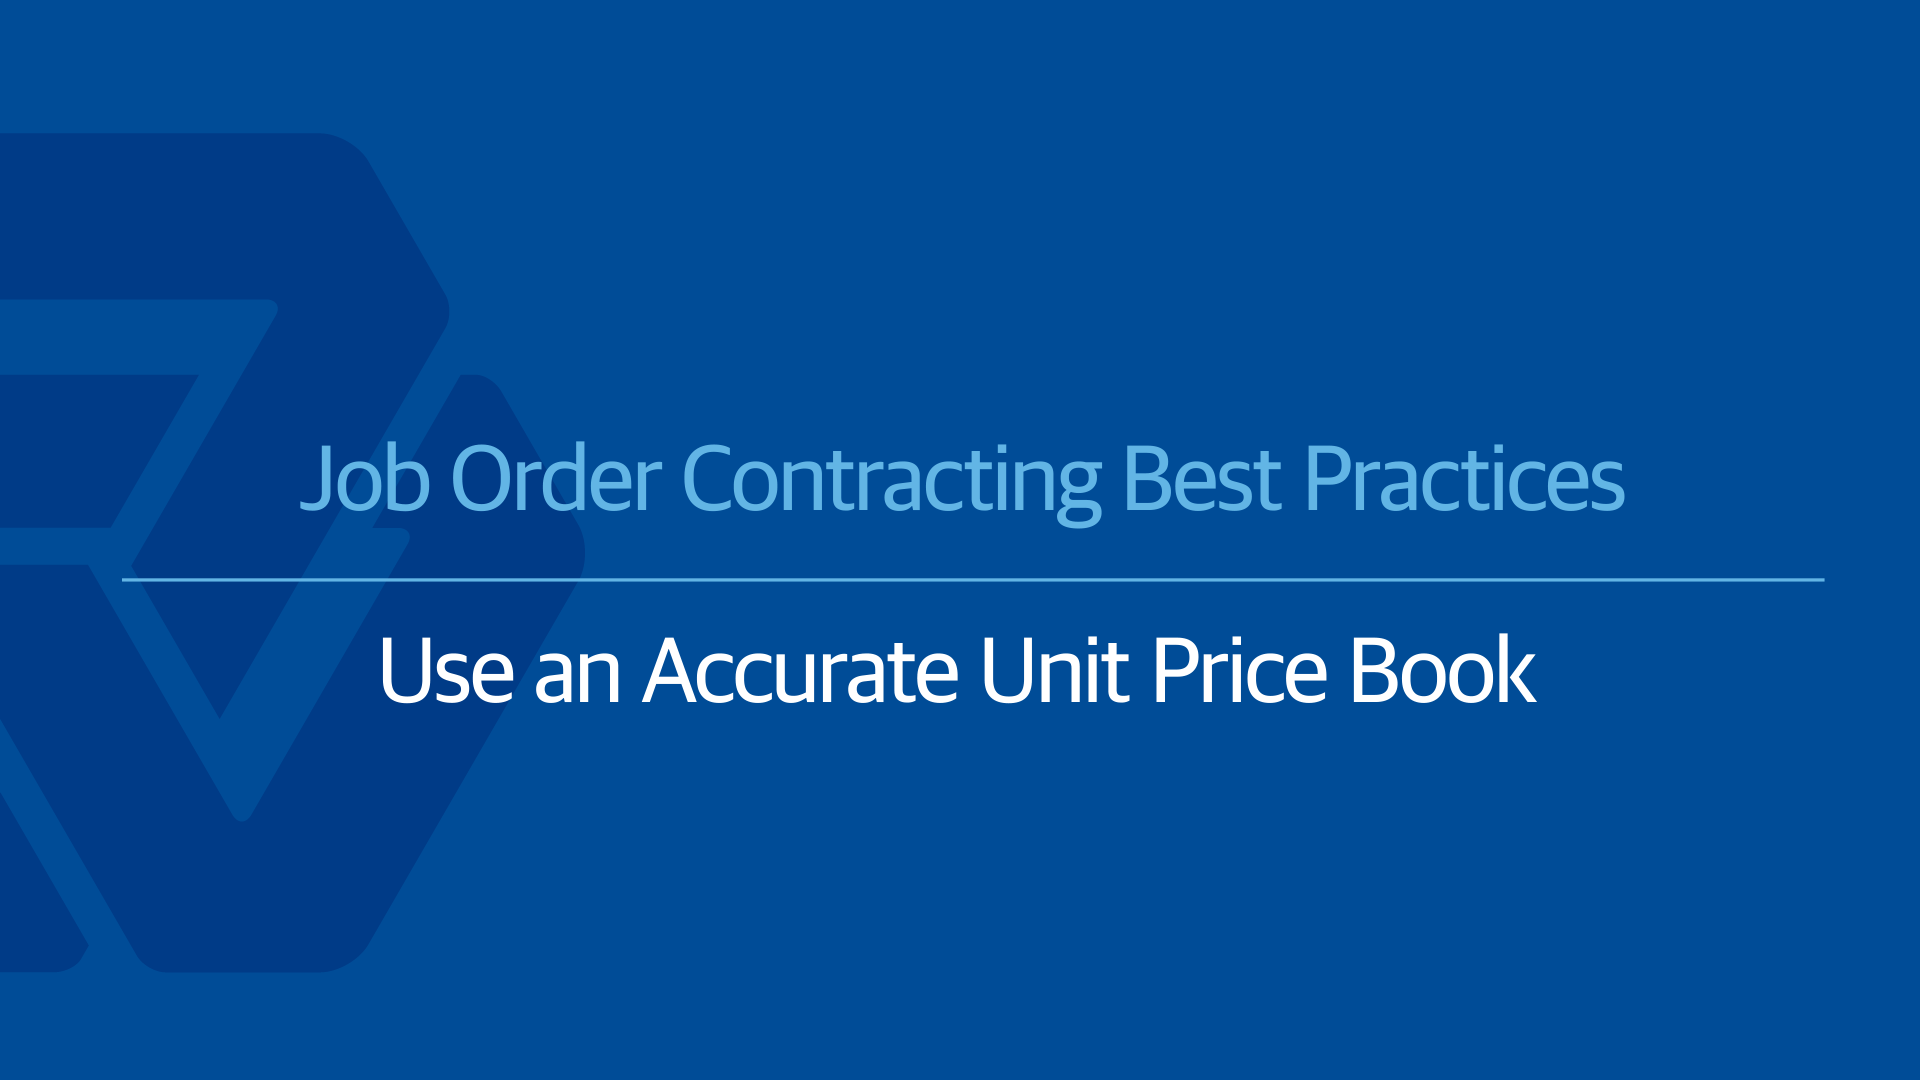 Job Order Contracting Best Practices: The Unit Price Book